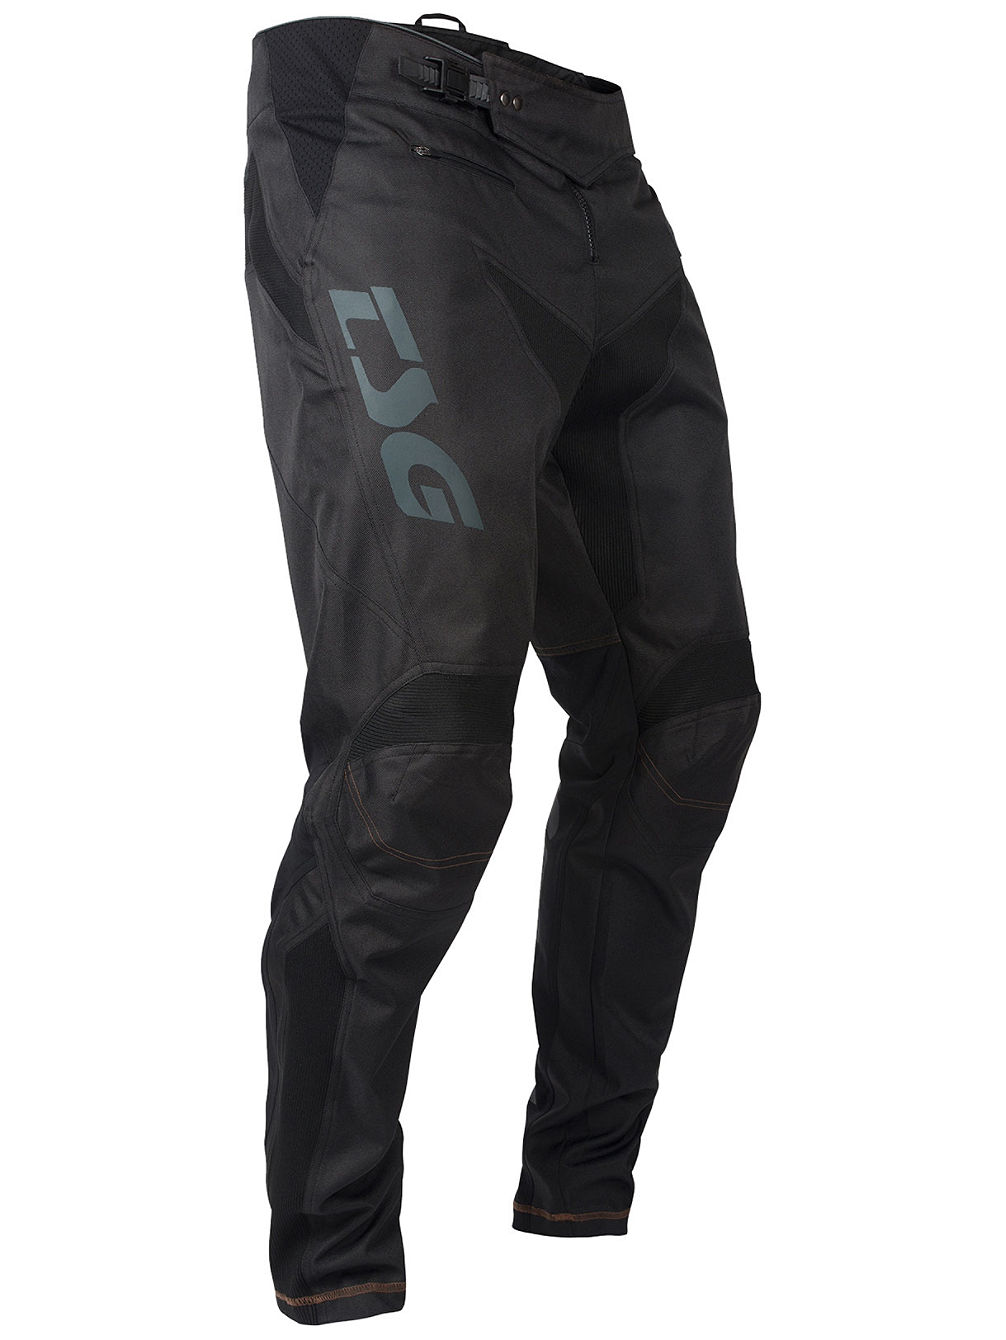 Be2 Dh Pants